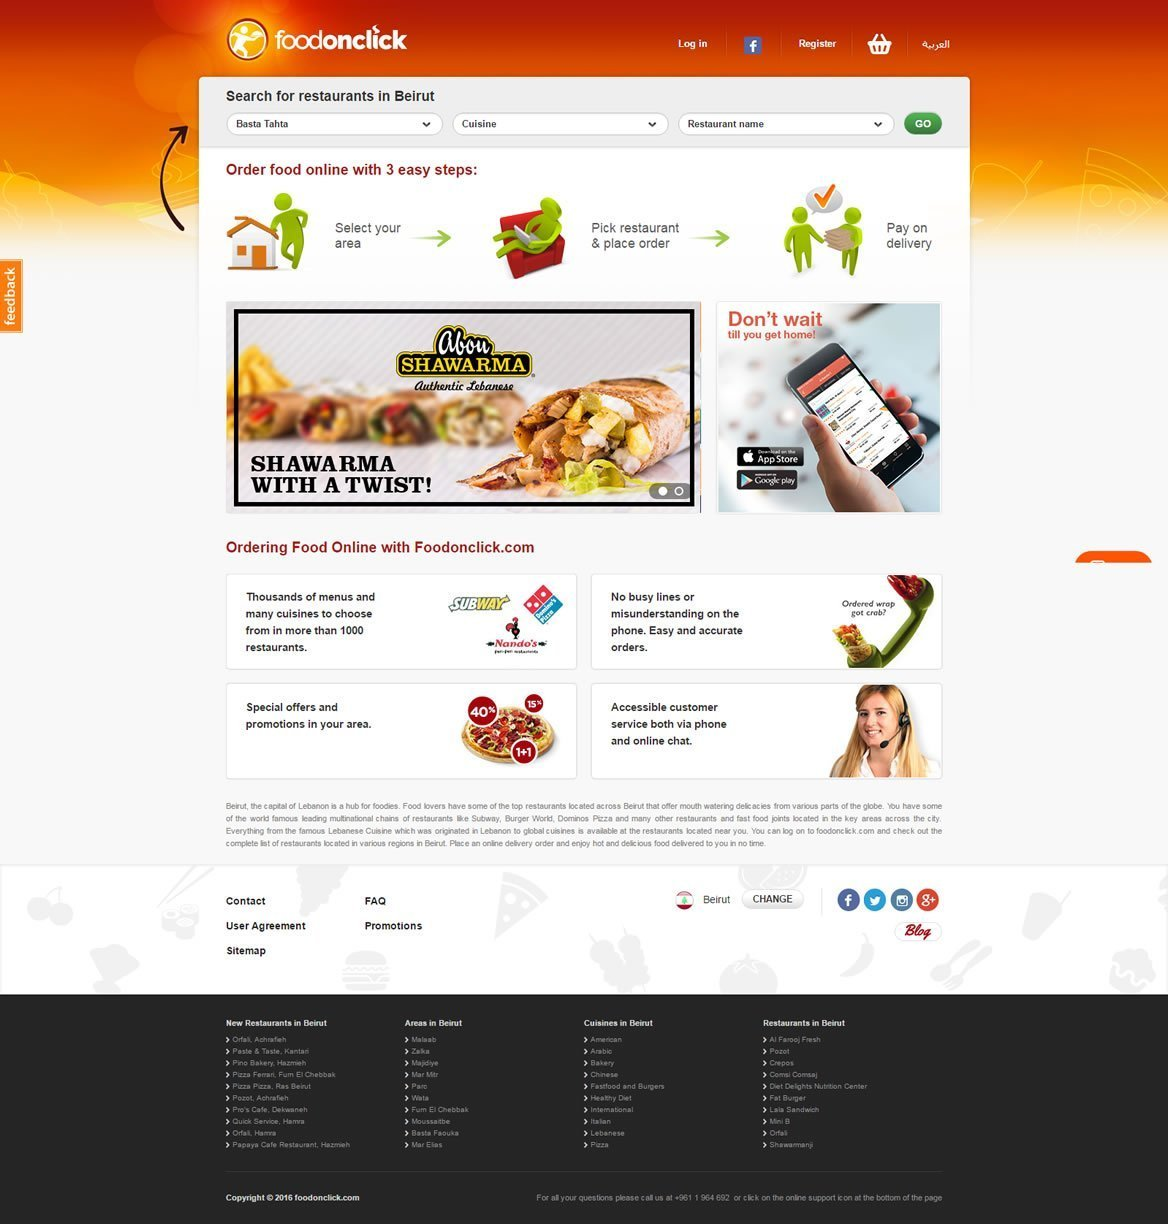 Food delivery mobile app solutions company